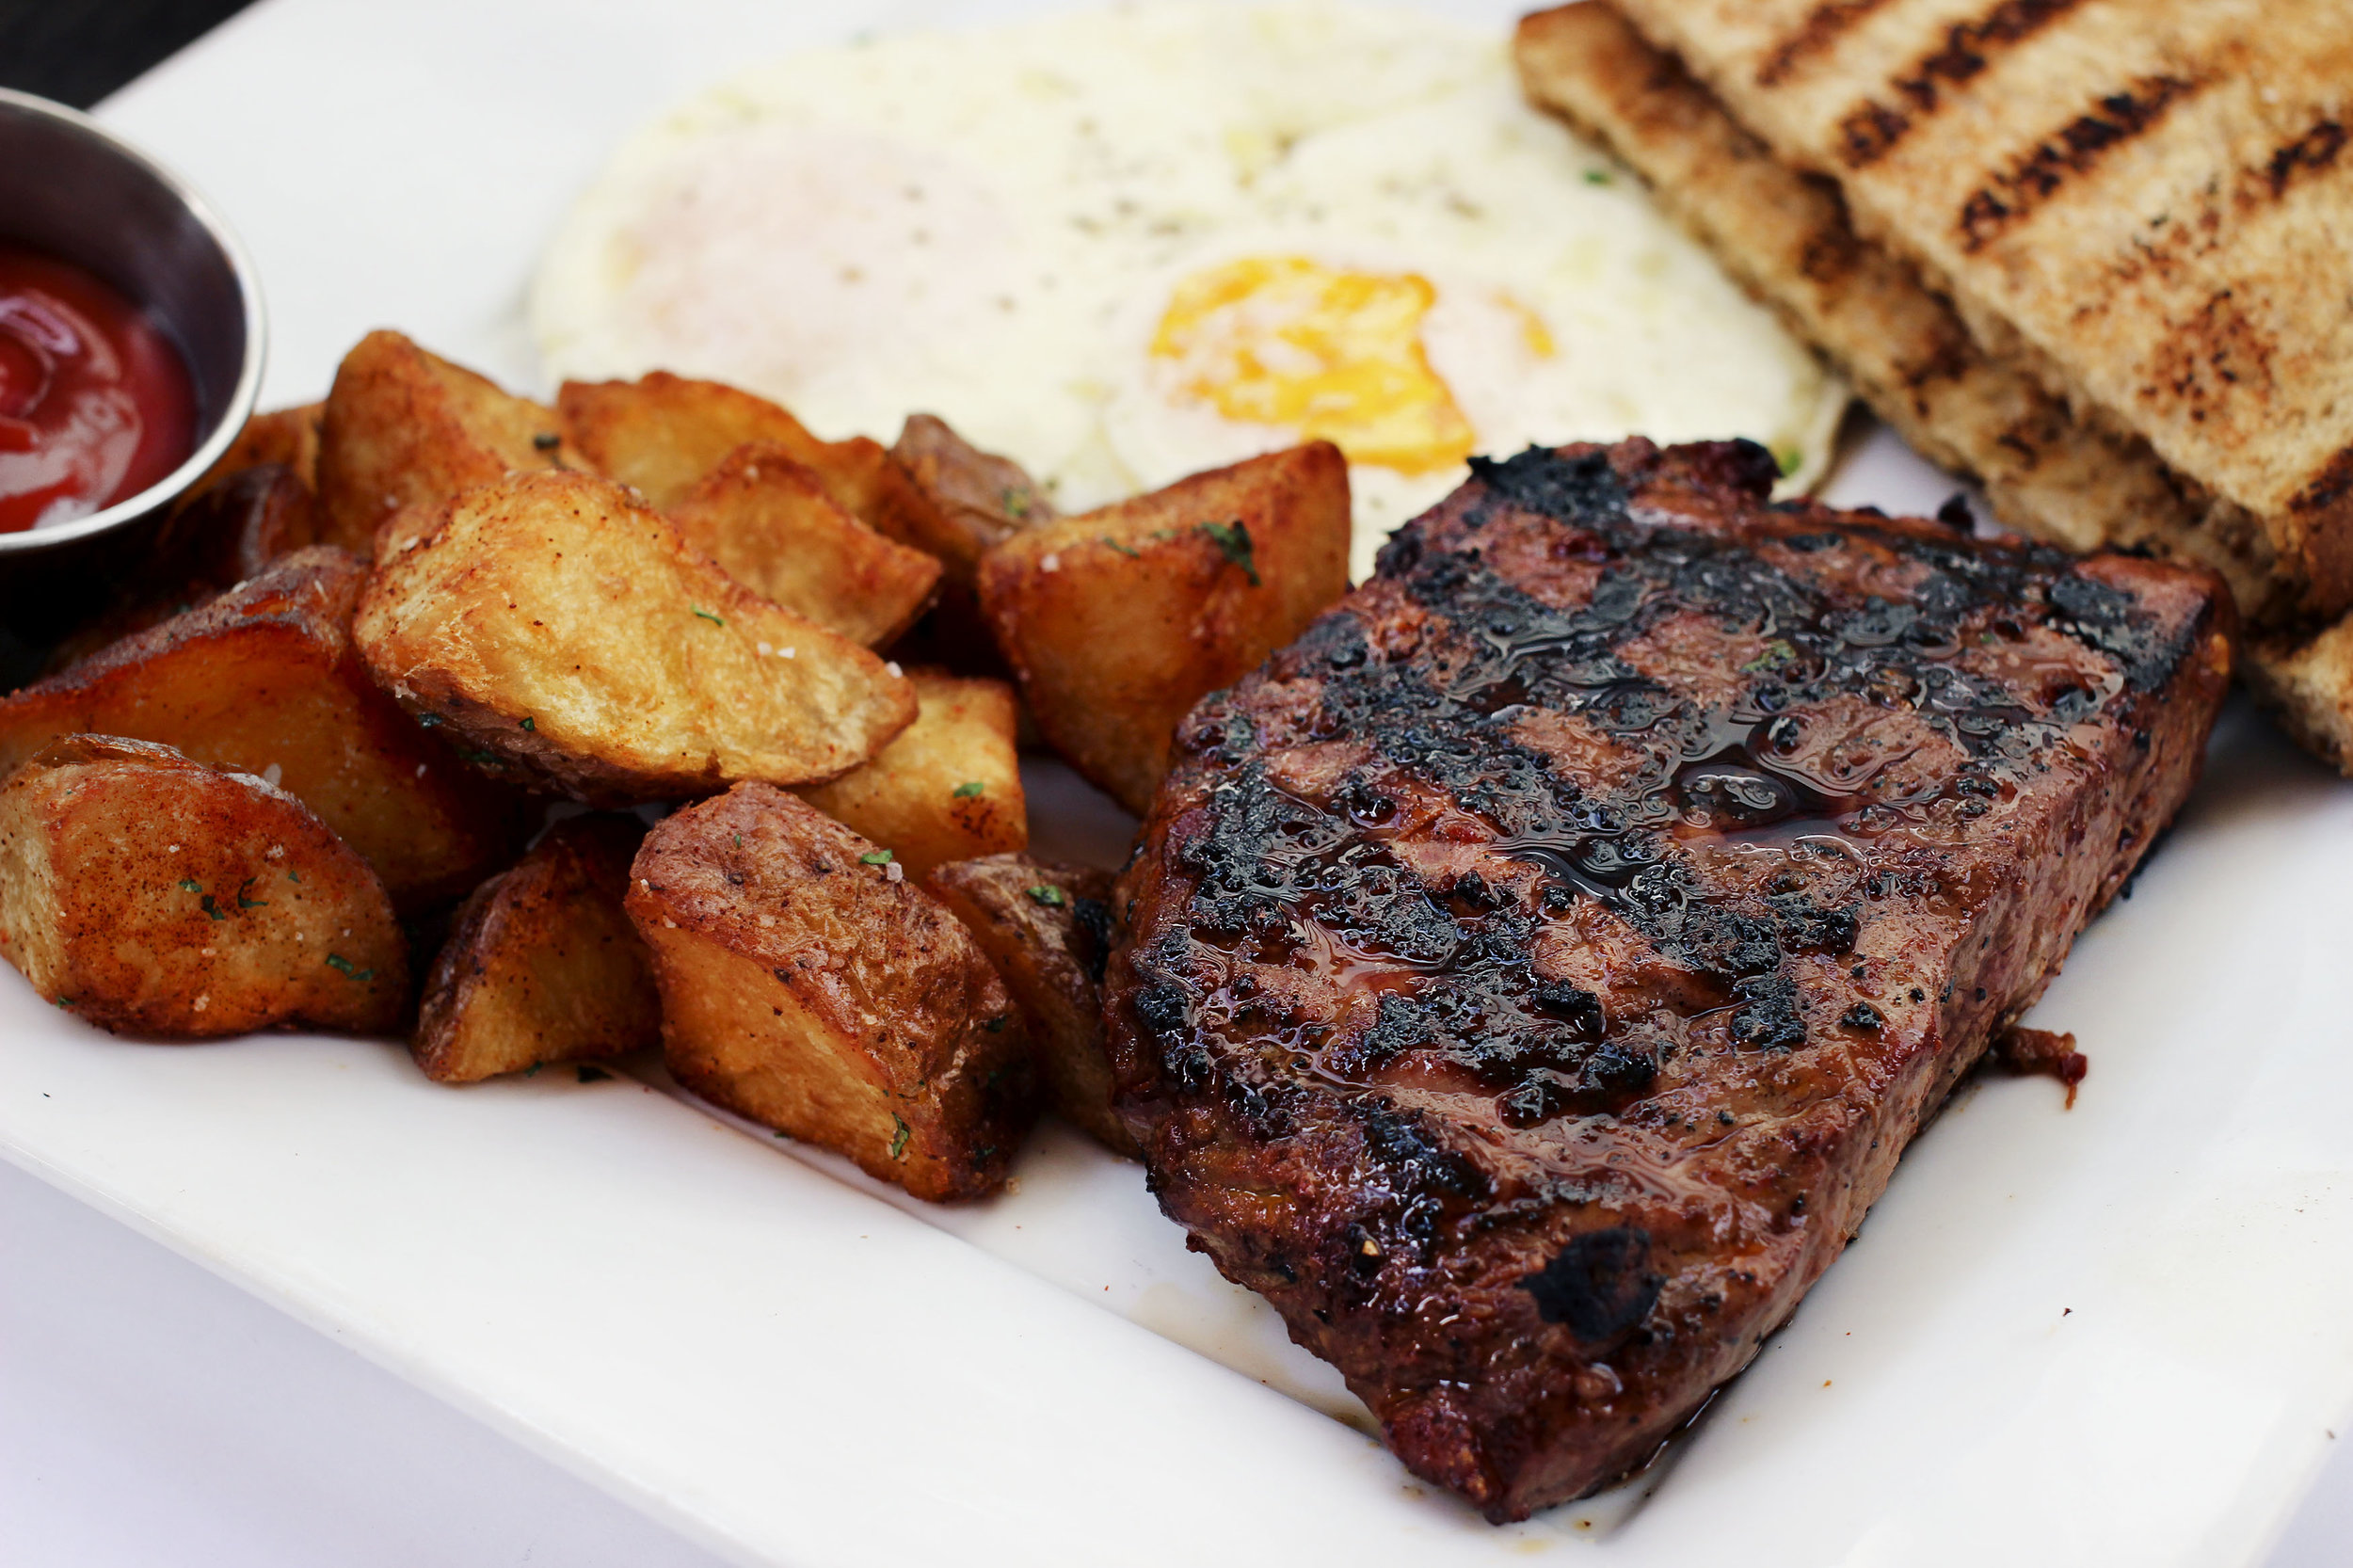 Flatiron Steak, roasted potatoes, eggs, and toast. The flatiron was cooked perfectly, extremely tender, ridiculously juicy.